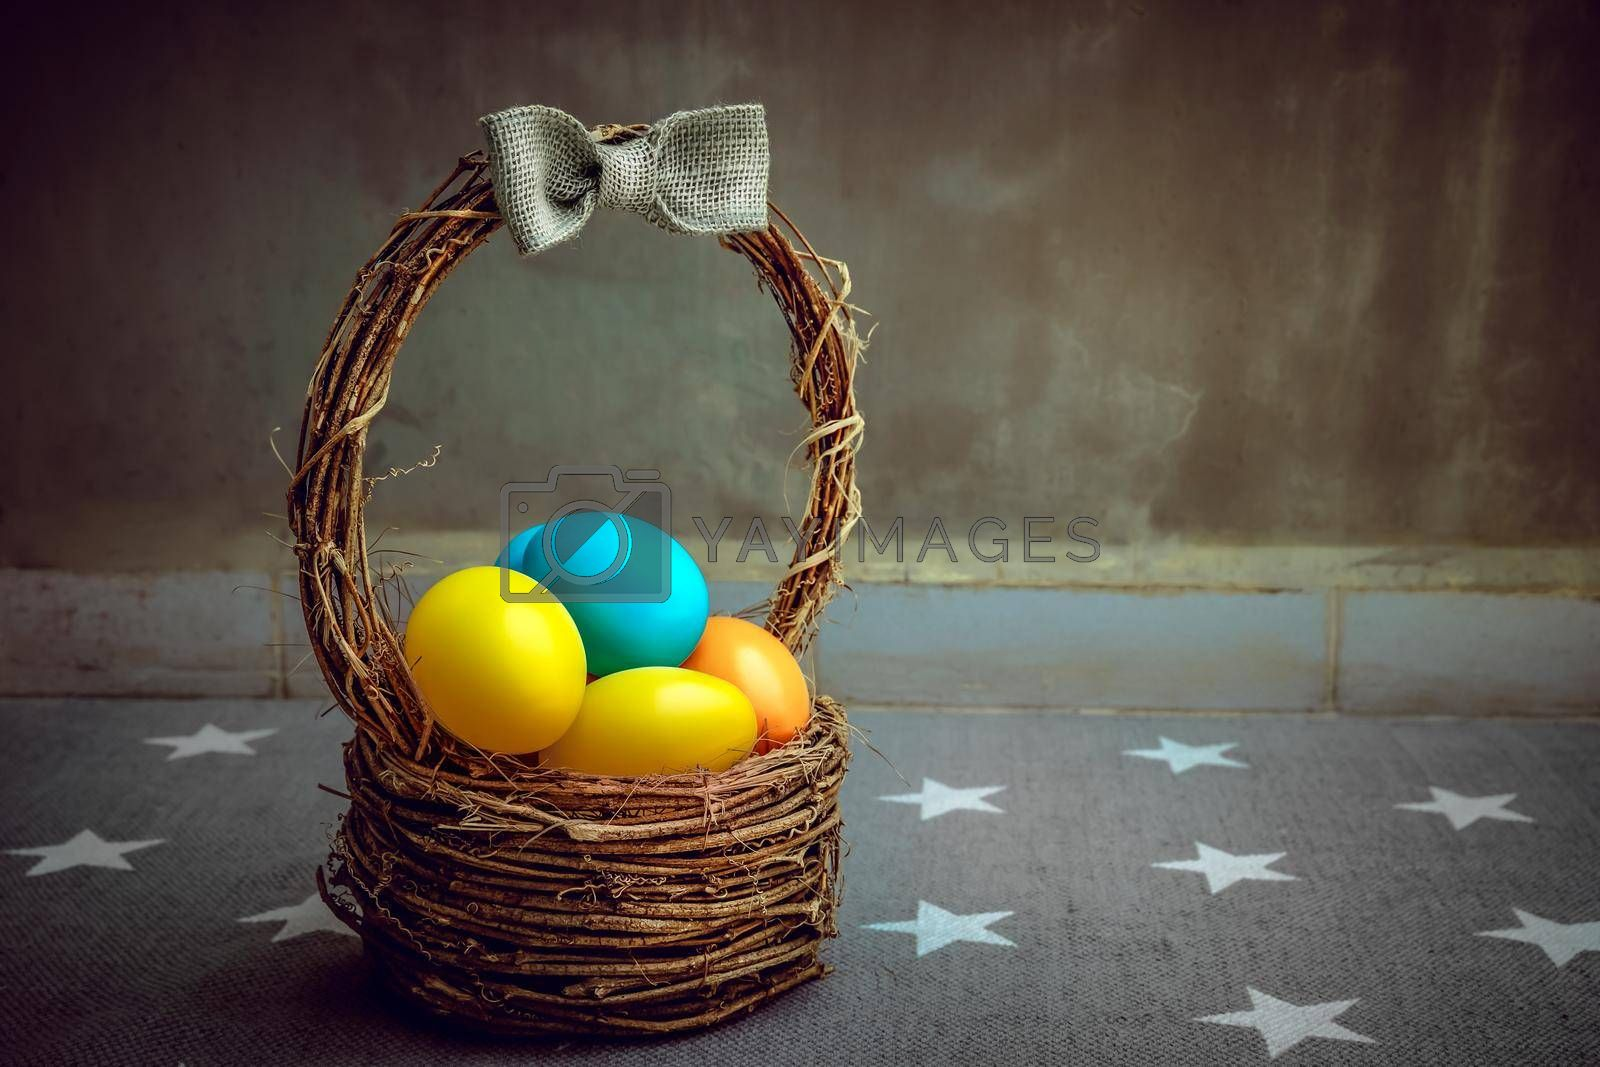 Beautiful Colorful Painted Eggs in the Basket at Home. Traditional Easter Decorations. Spring Christian Holiday.